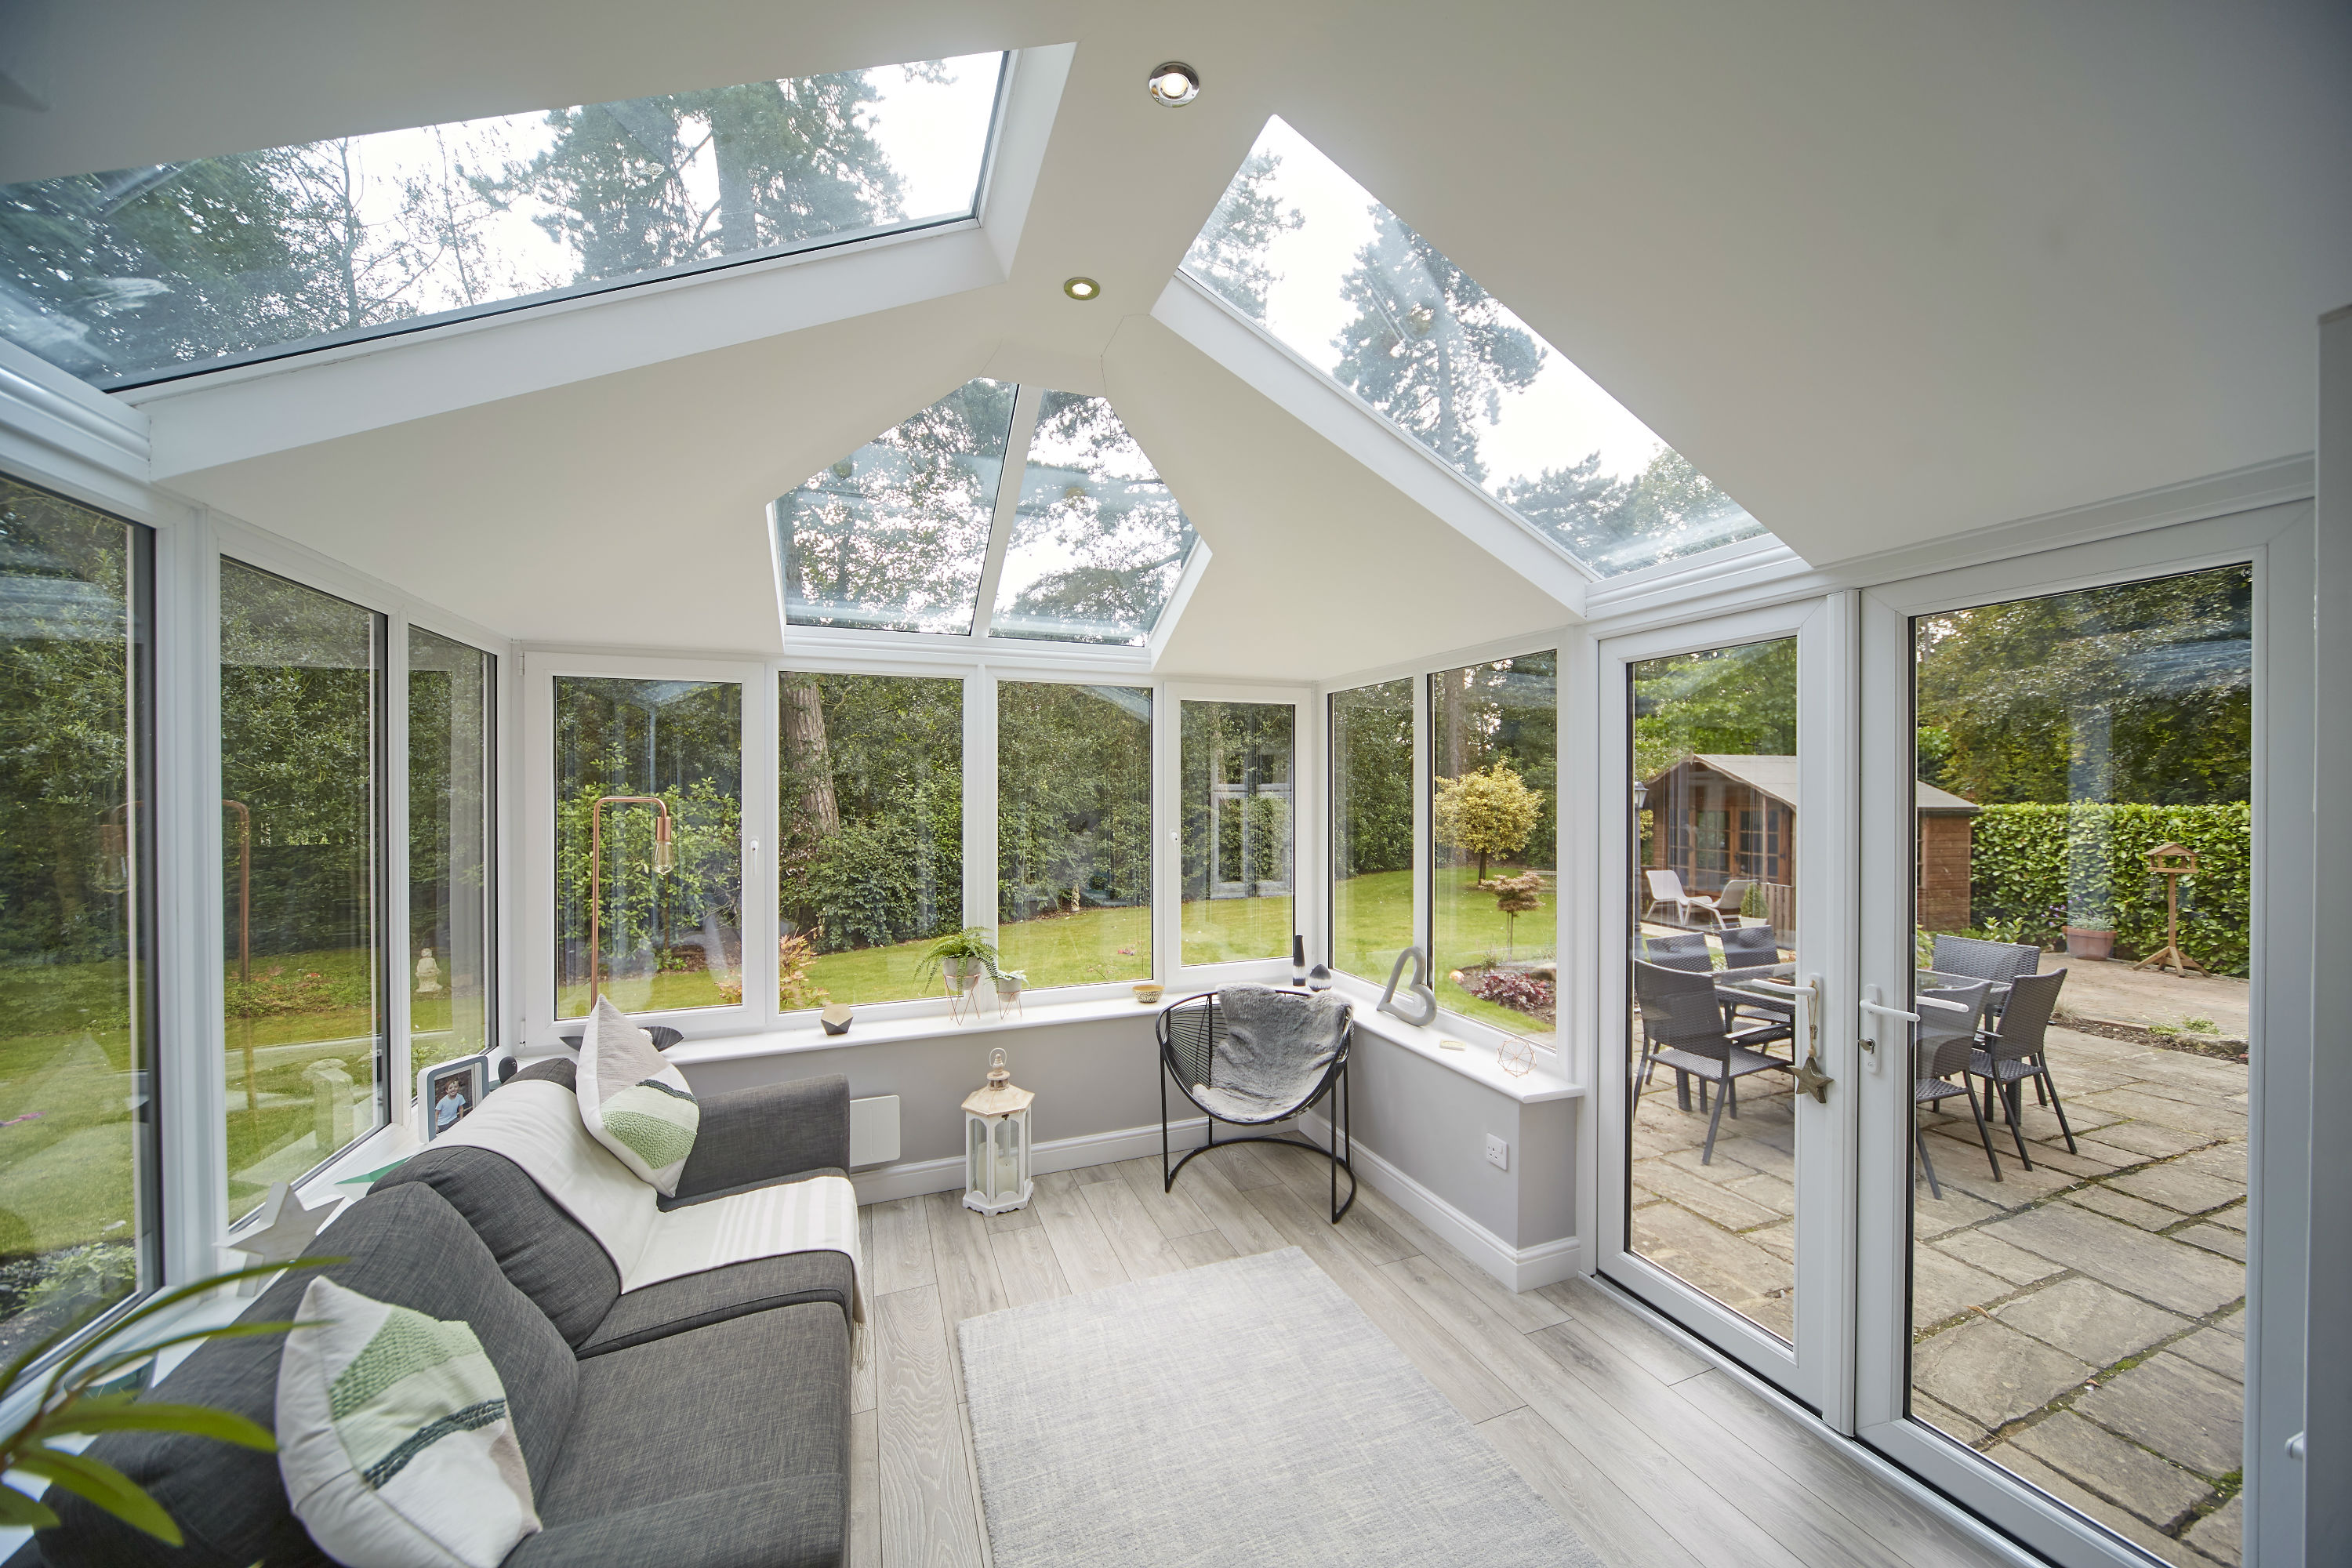 Is a conservatory roof replacement worth the cost? | EYG